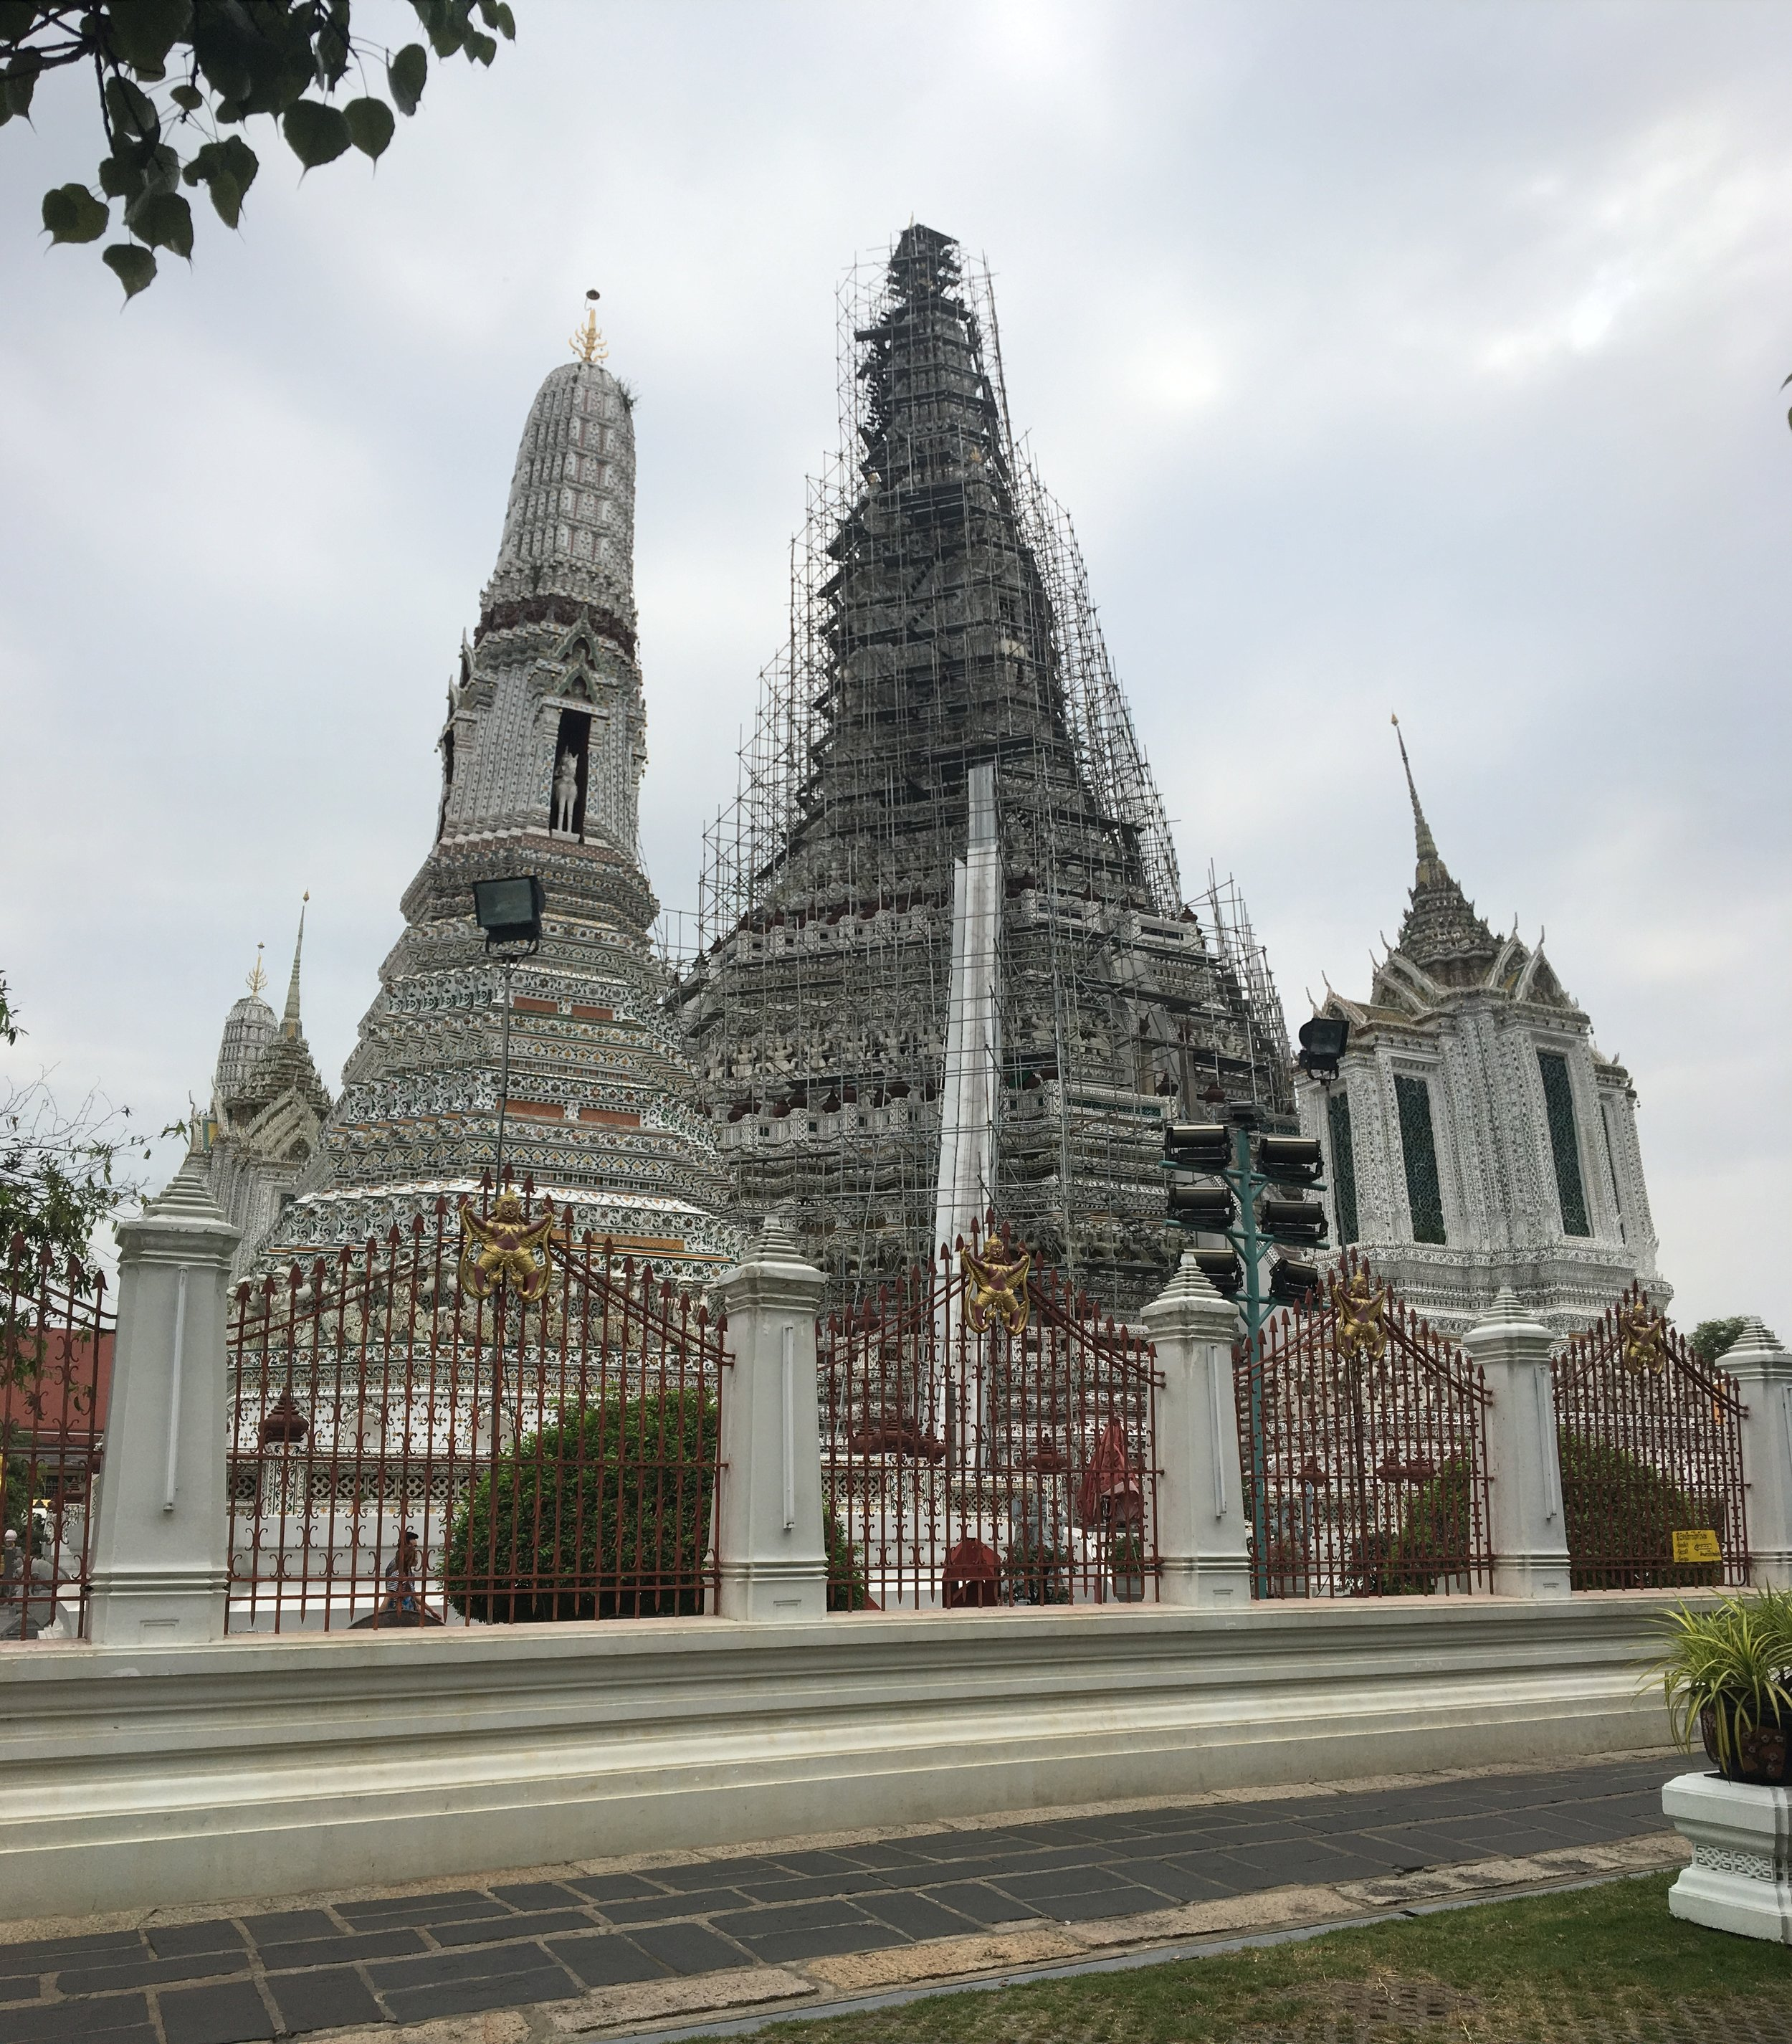 The restoration of Wat Arun